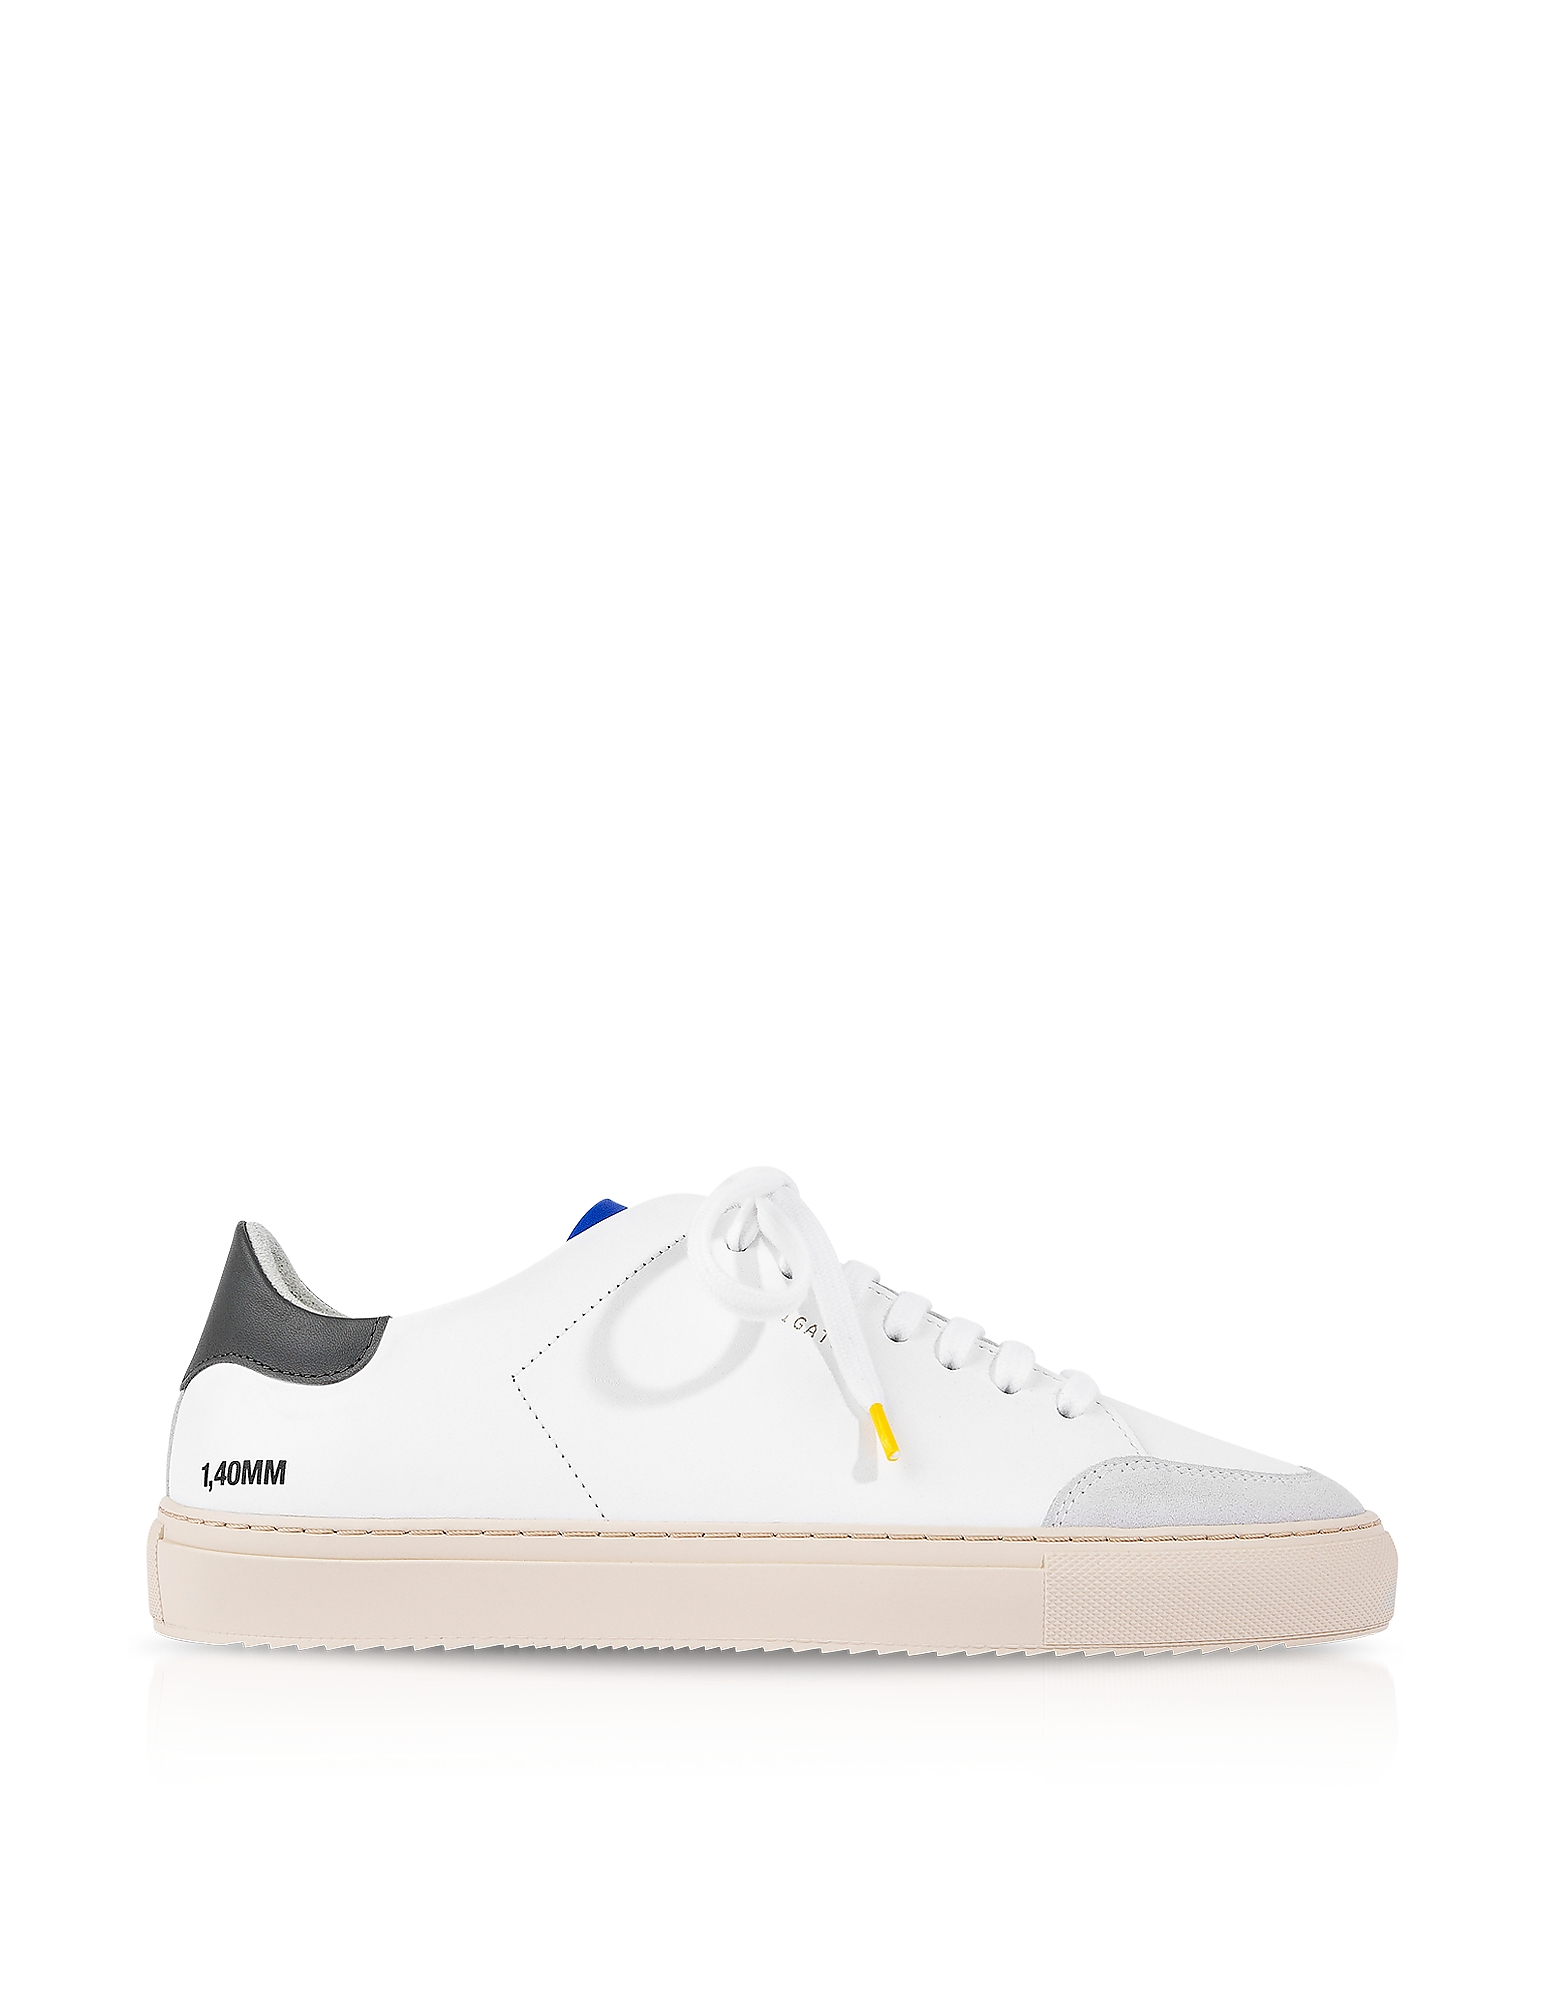 Clean 90 Triple Green, Blue,Yellow Leather Men's Sneakers, White